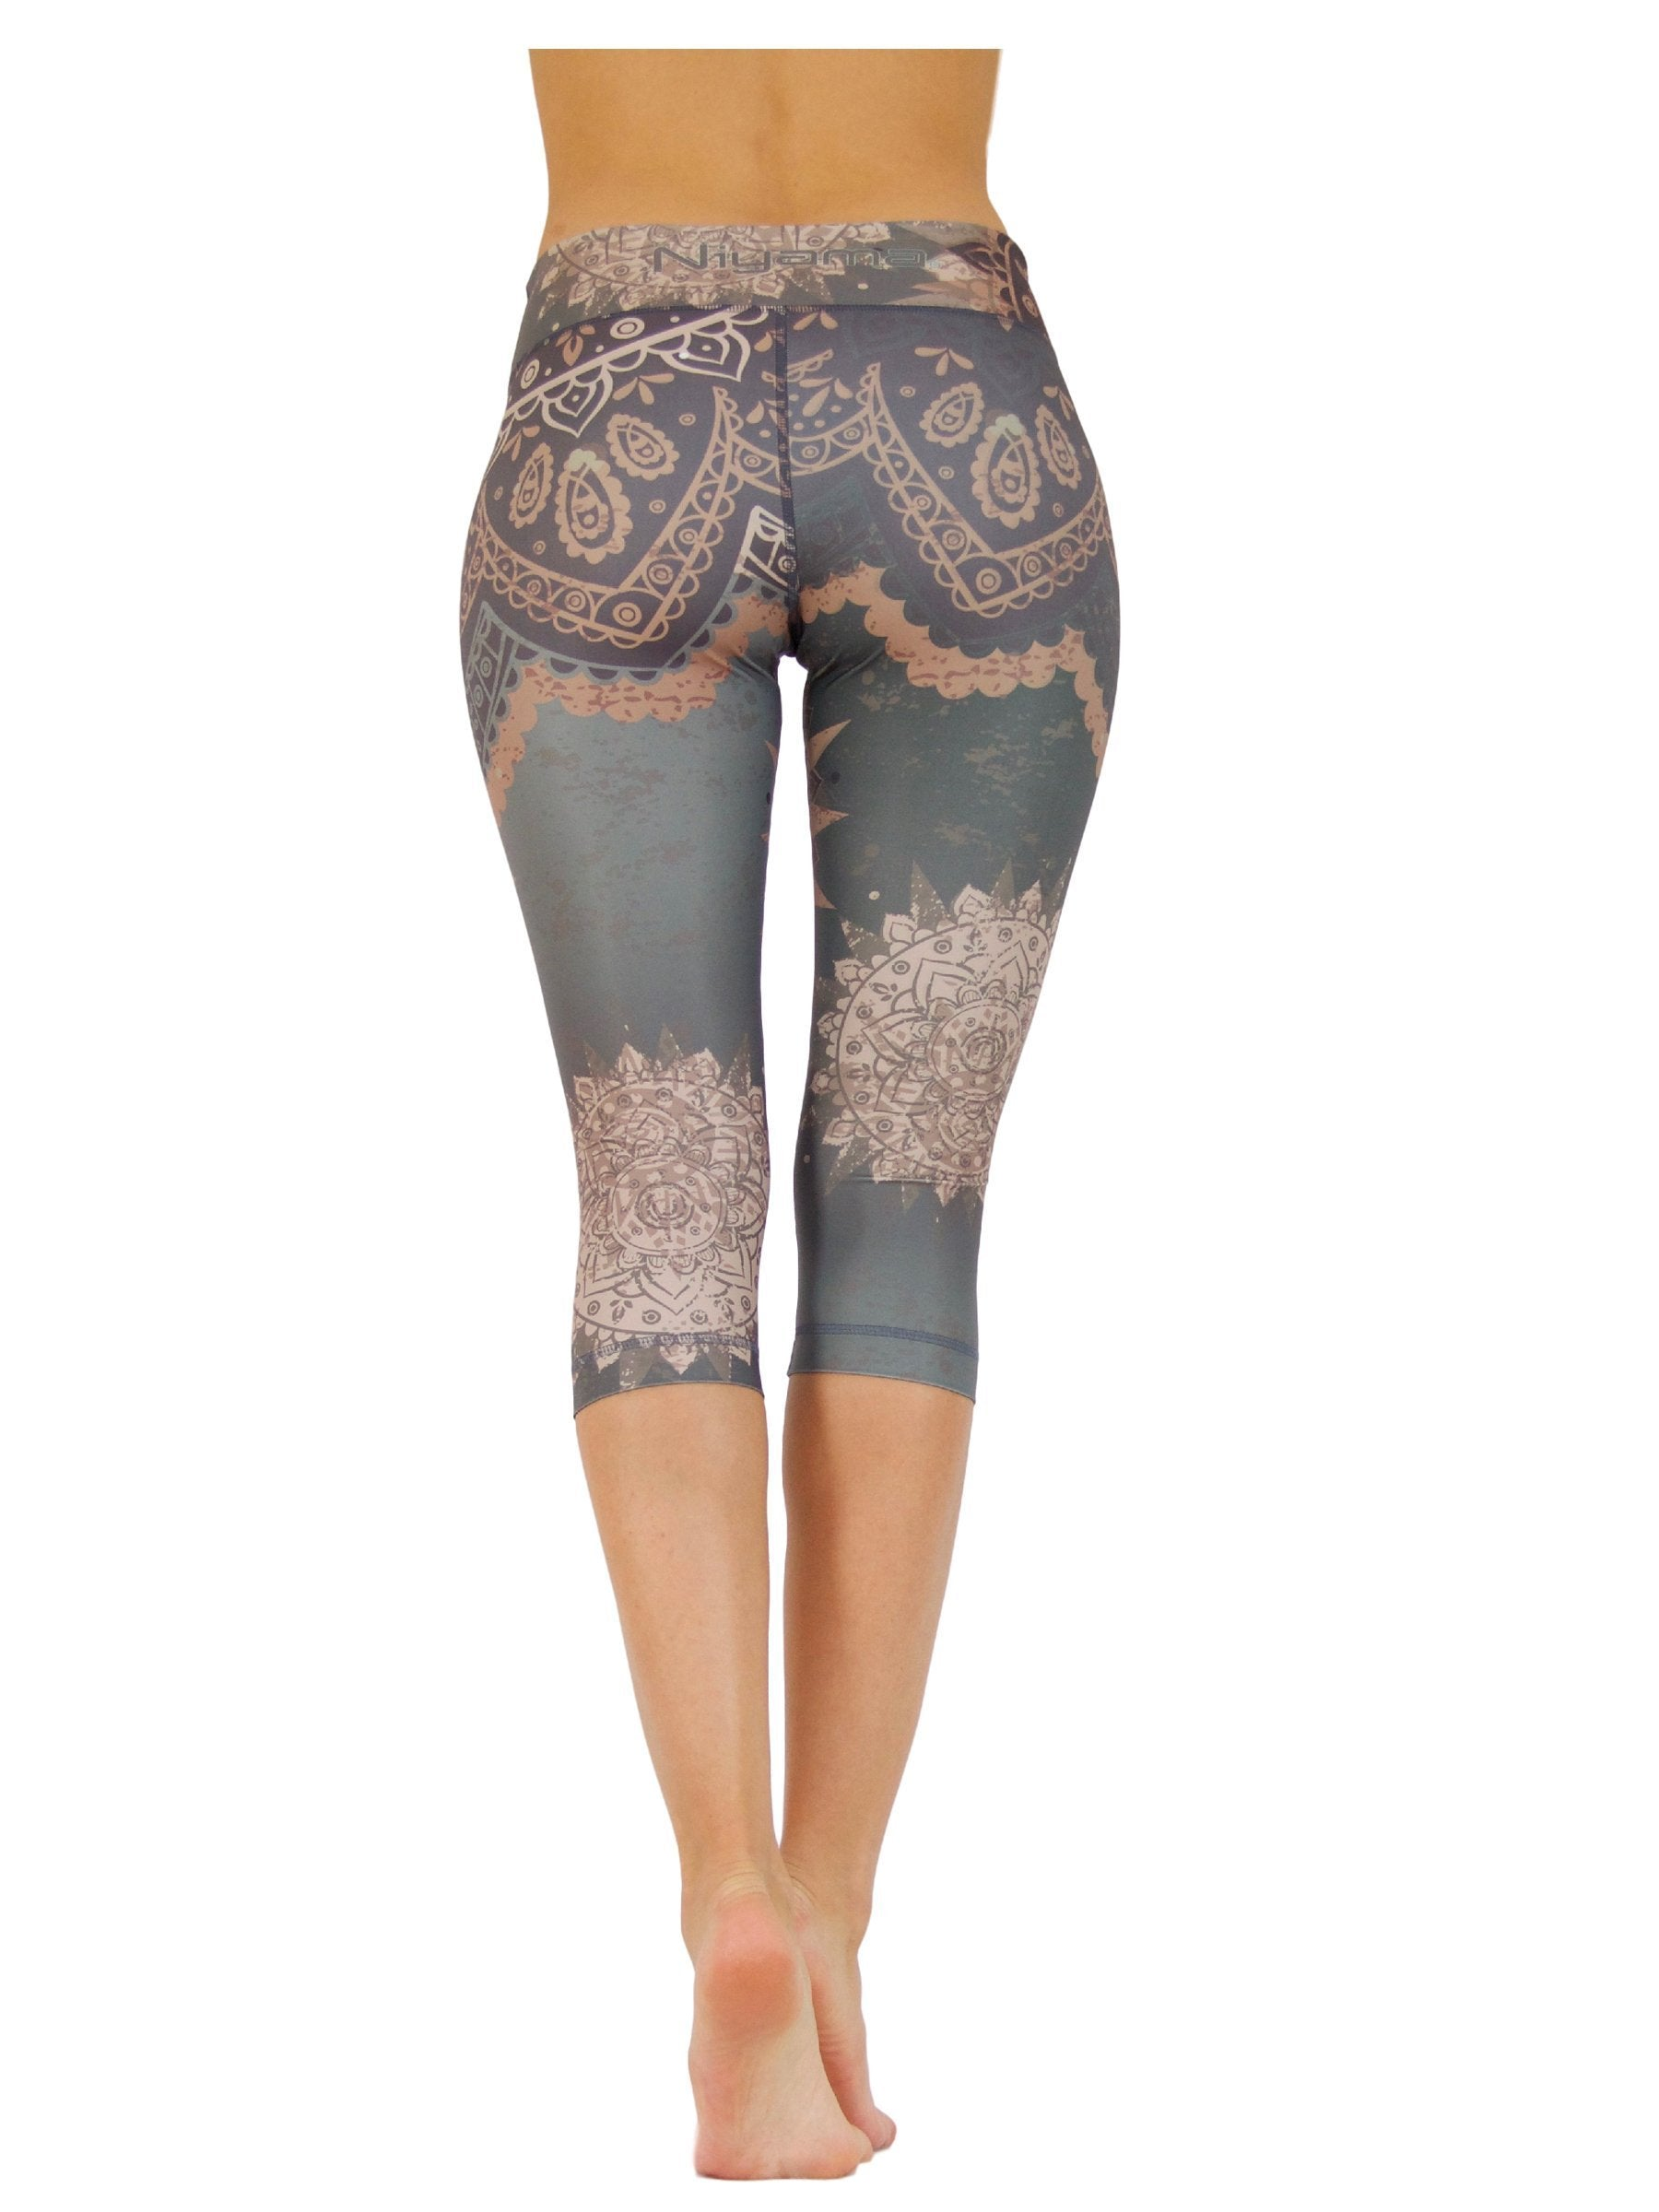 Dancing Beauty by Niyama - High Quality, , Yoga Legging for Movement Artists.